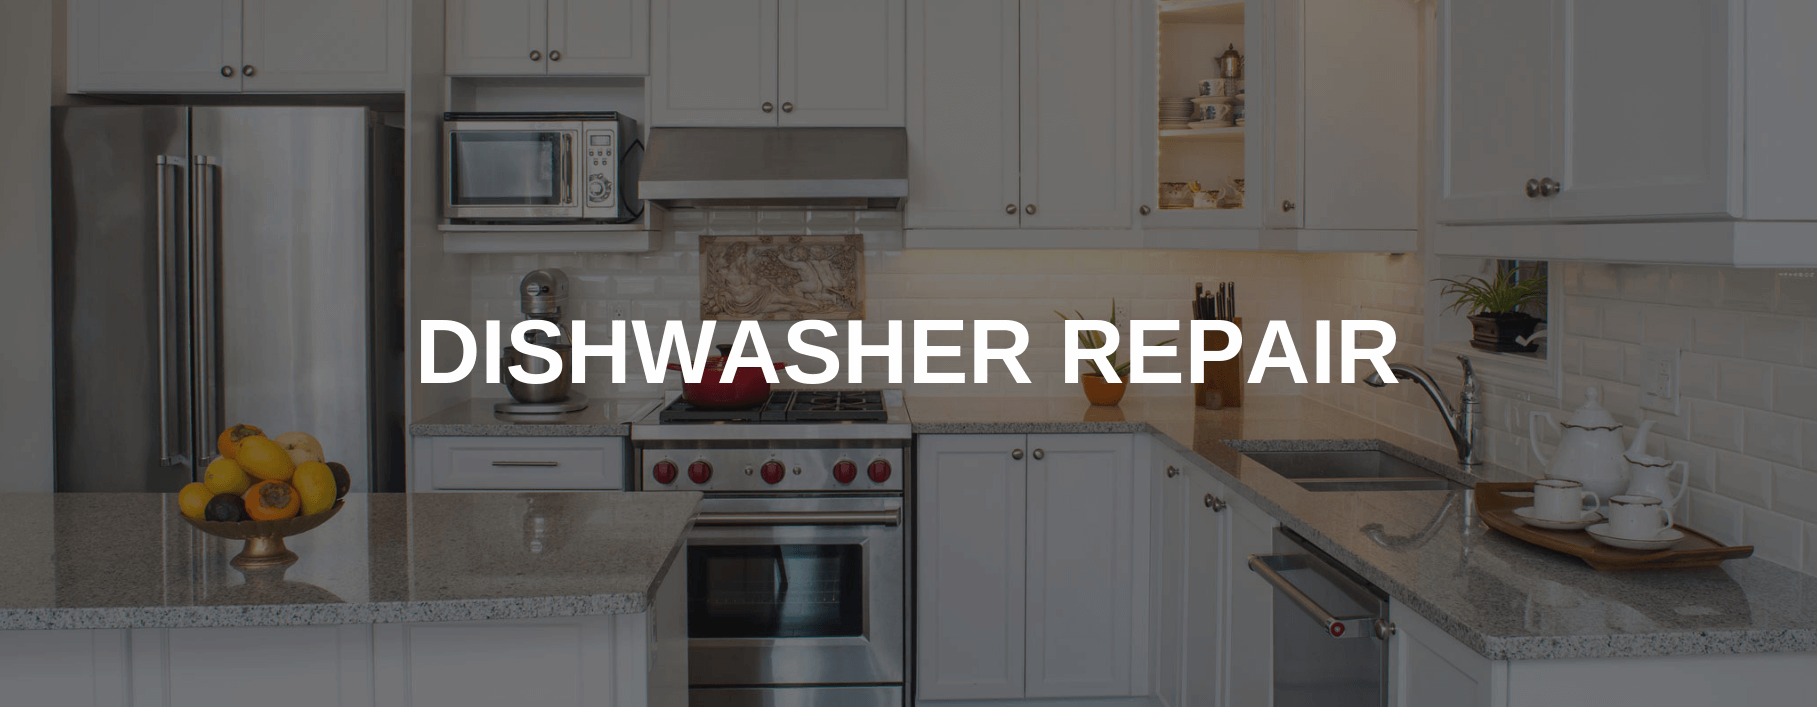 dishwasher repair west haven